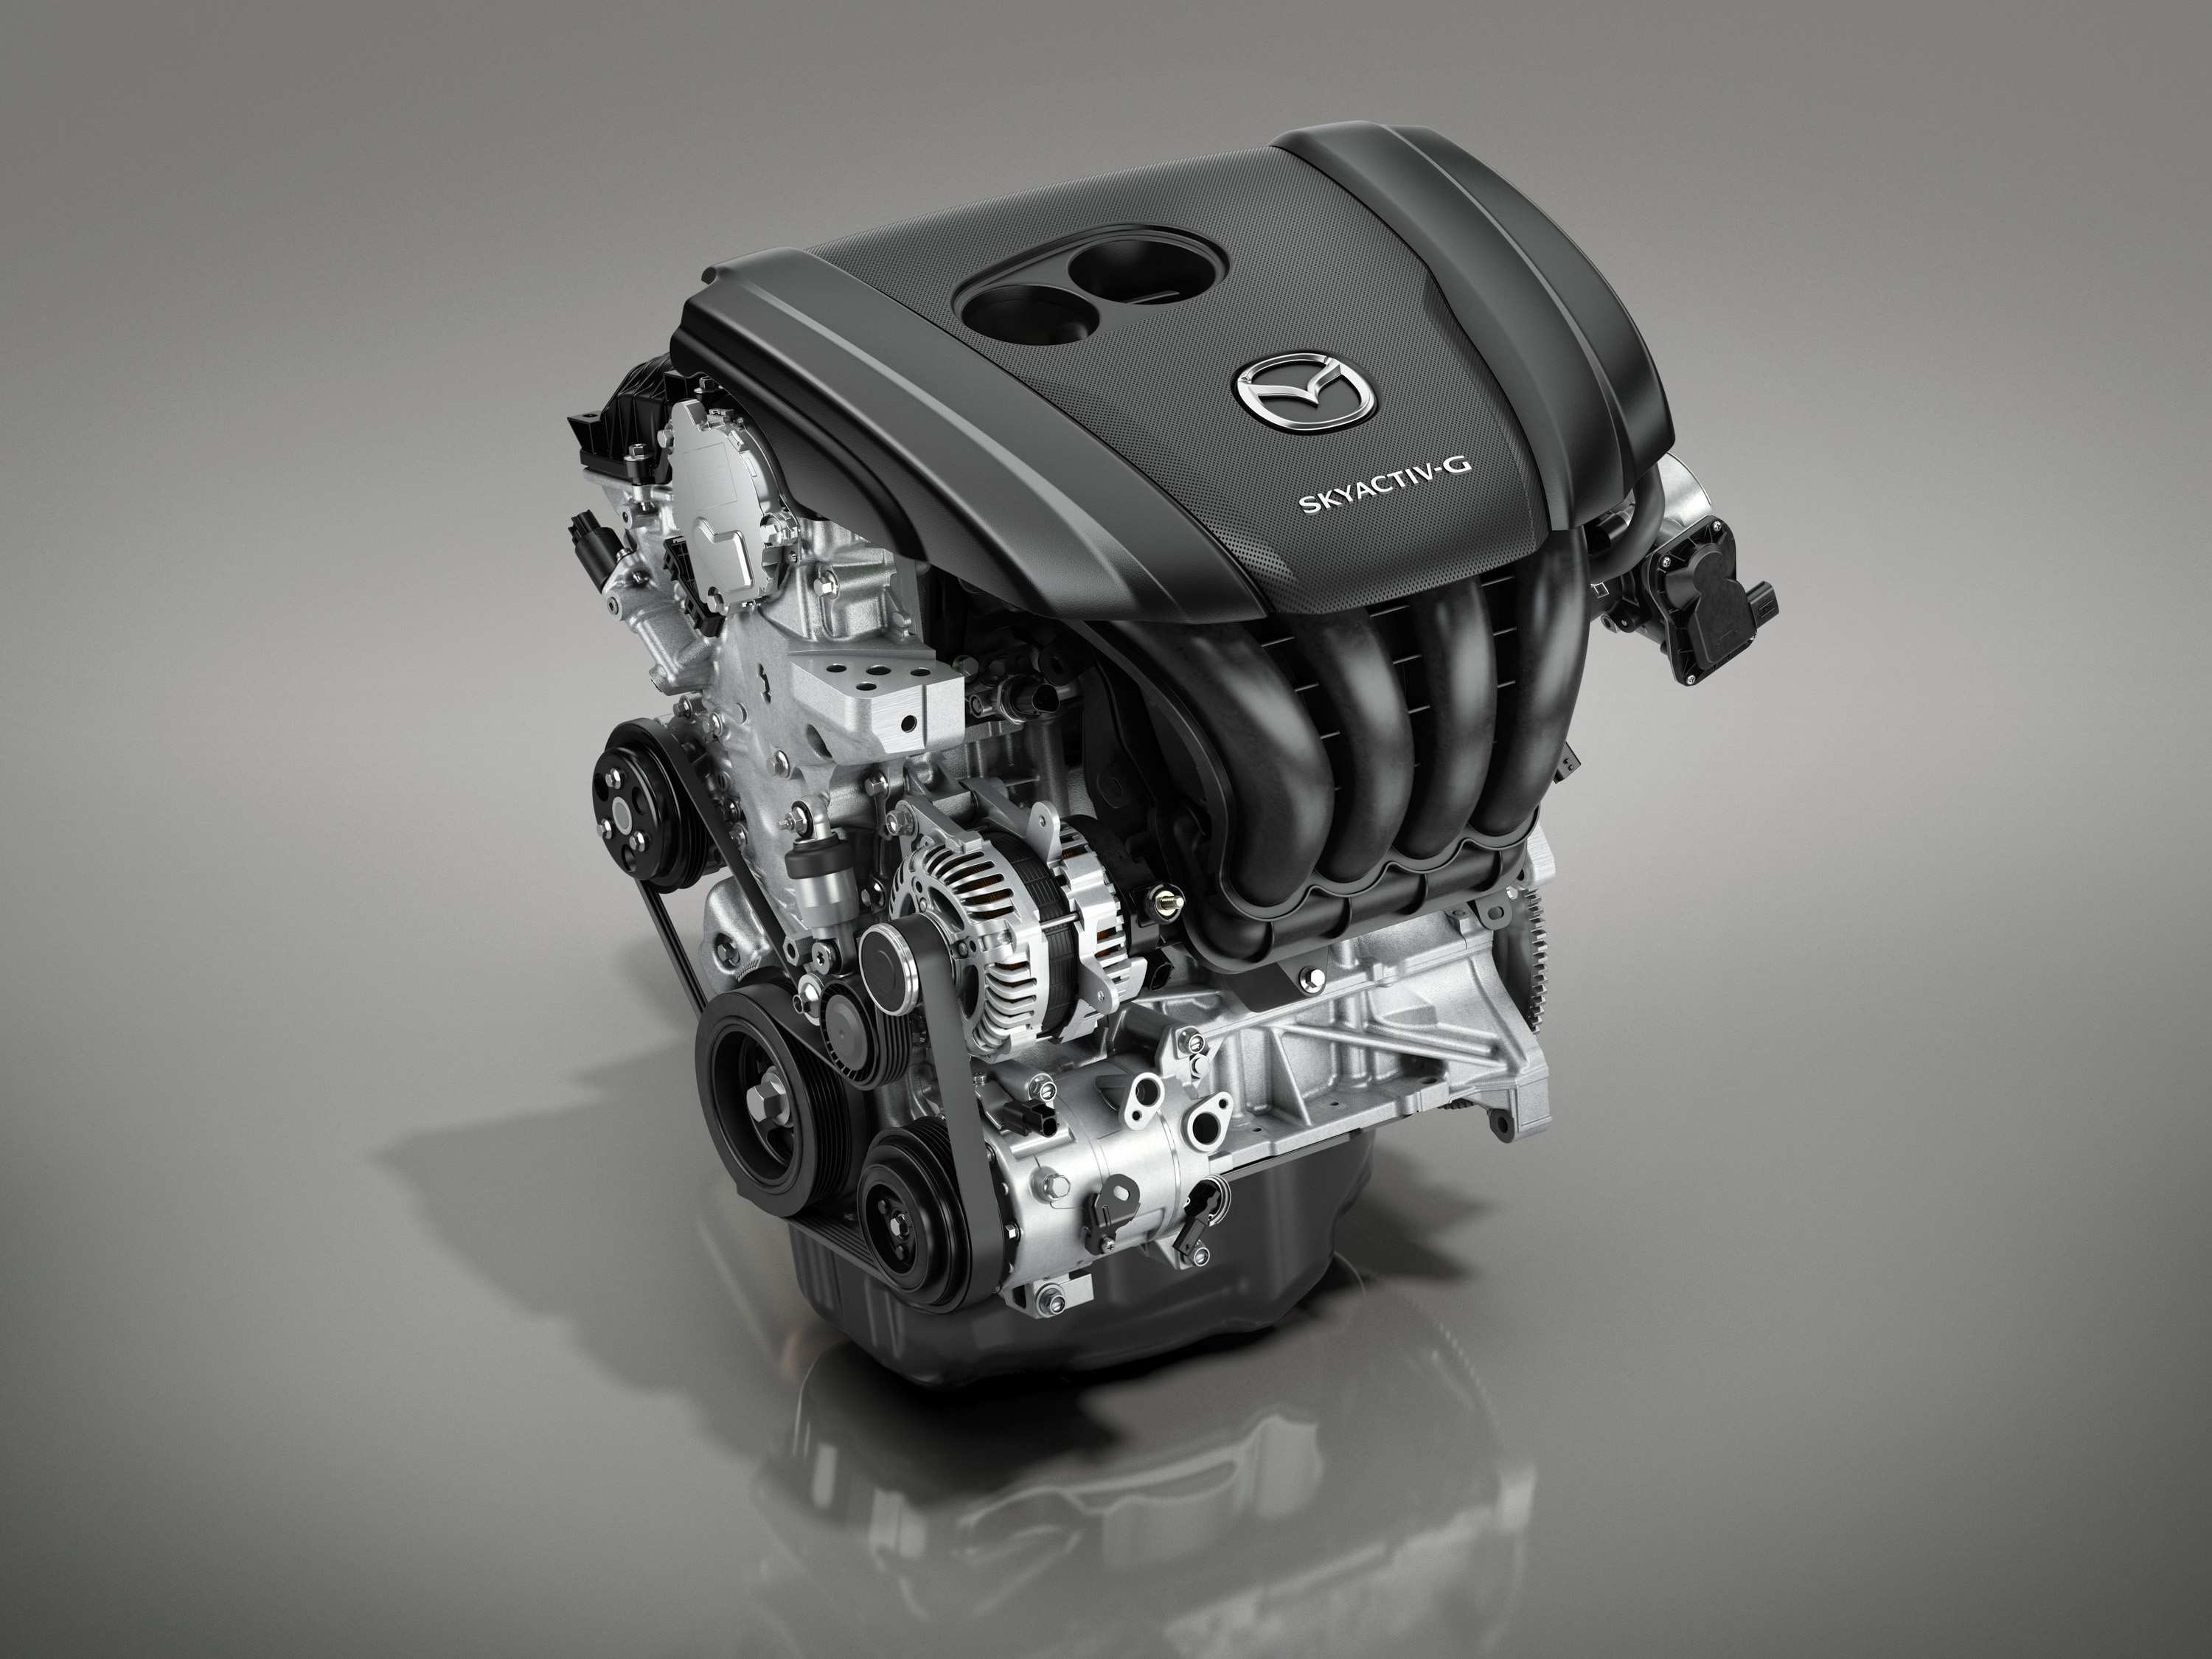 48 New Mazda 2019 Engine Redesign with Mazda 2019 Engine